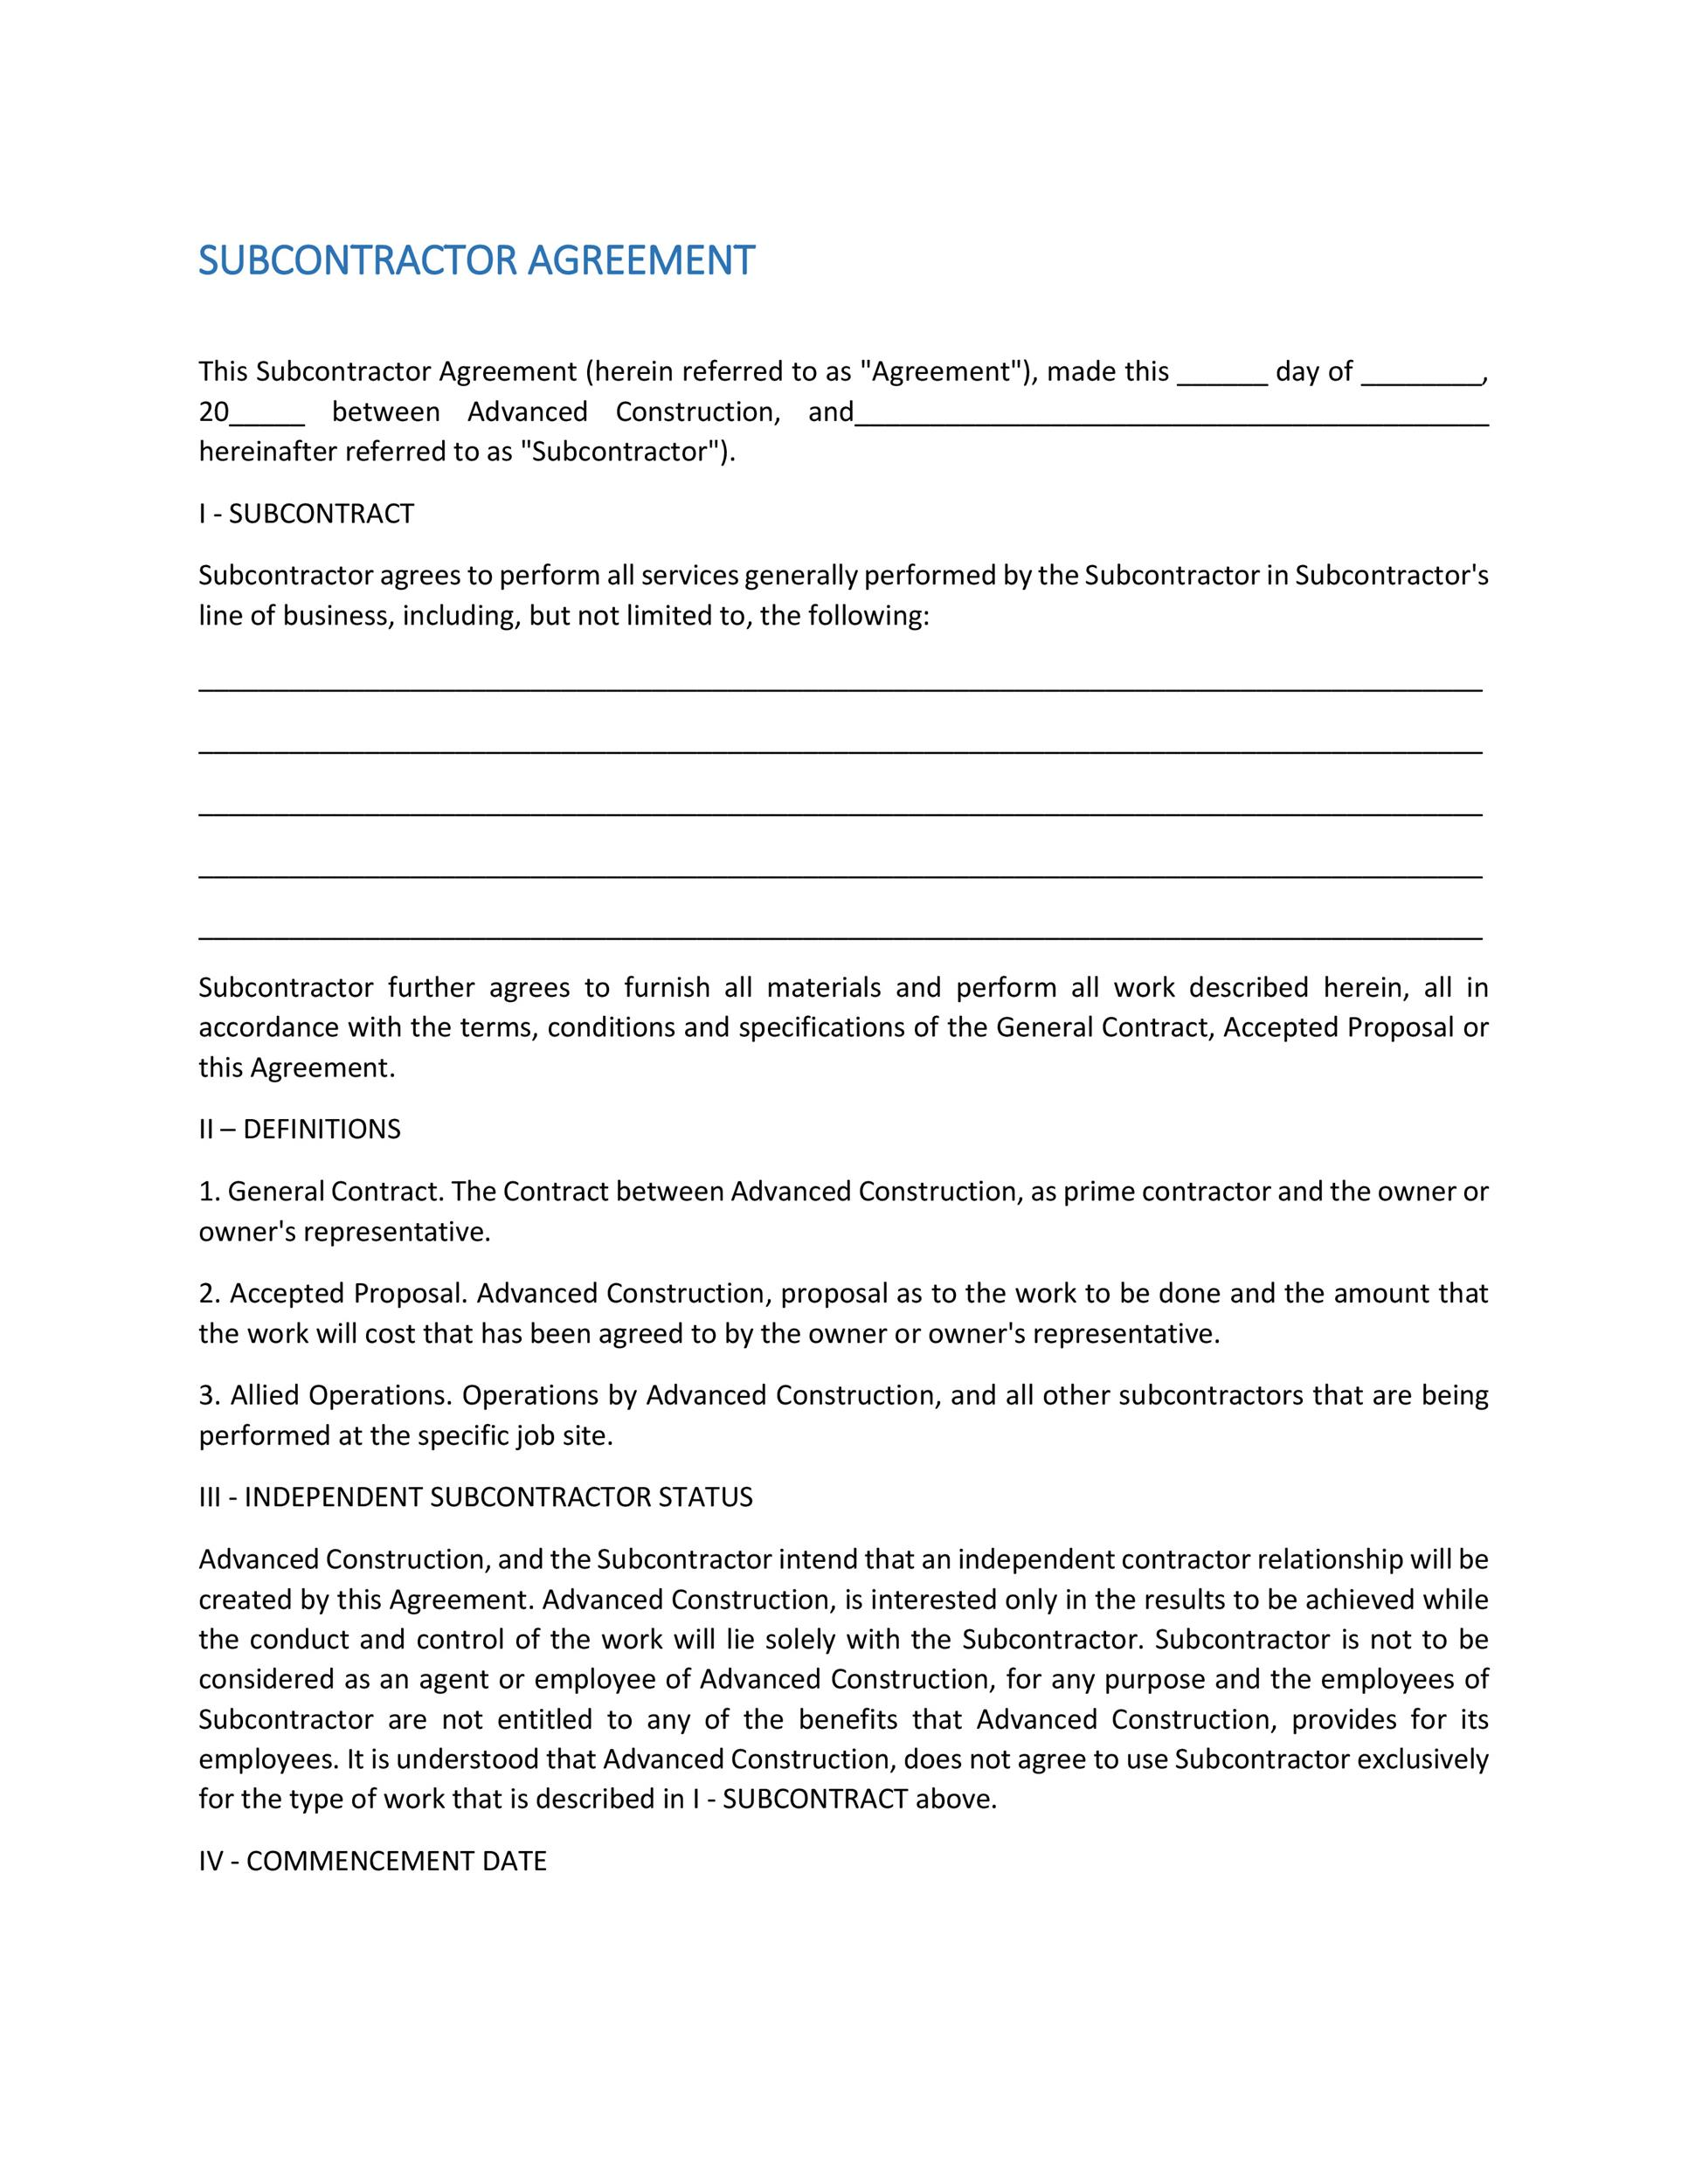 Free Subcontractor Agreement 35